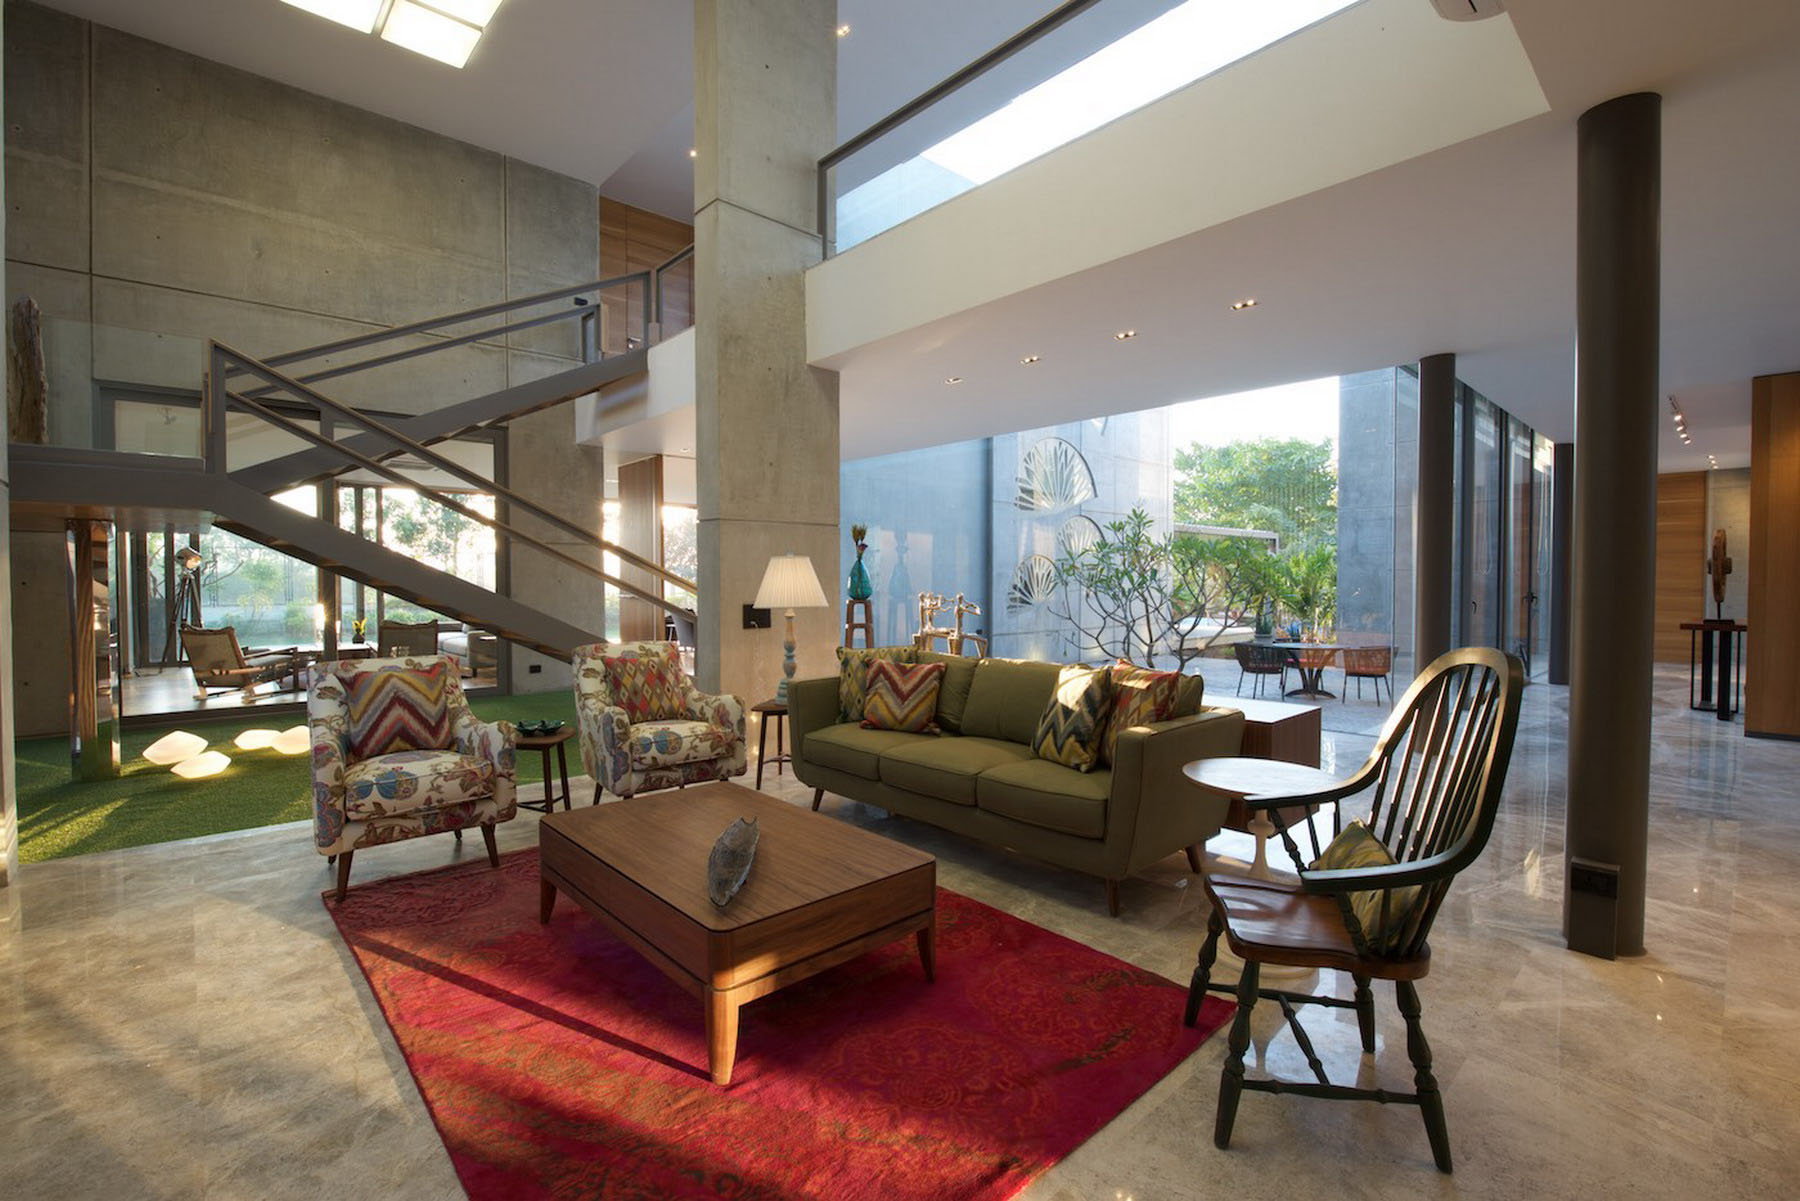 Ahmedabad Home By S A K Designs Caandesign Architecture And Home Design Blog